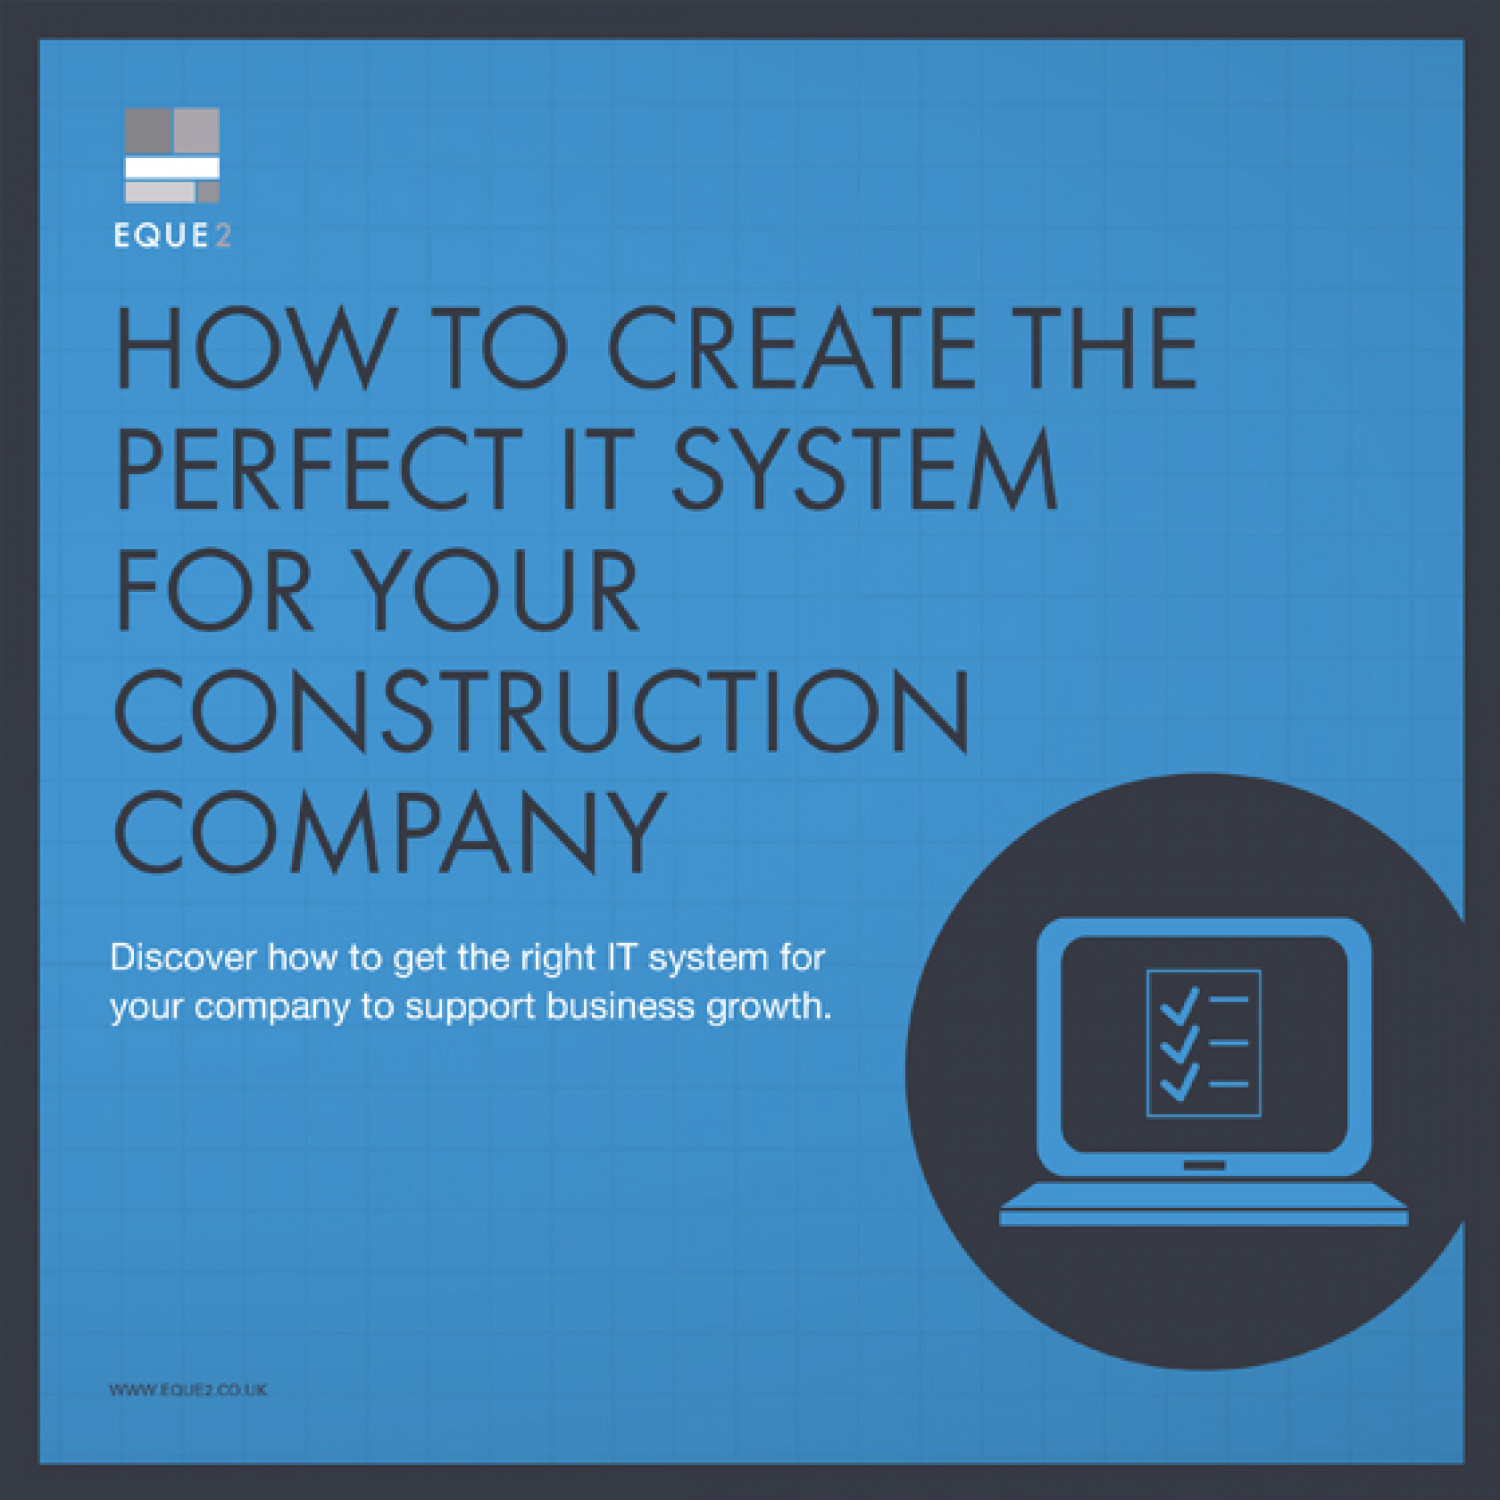 How to Create the Perfect IT System For Your Construction Company Infographic